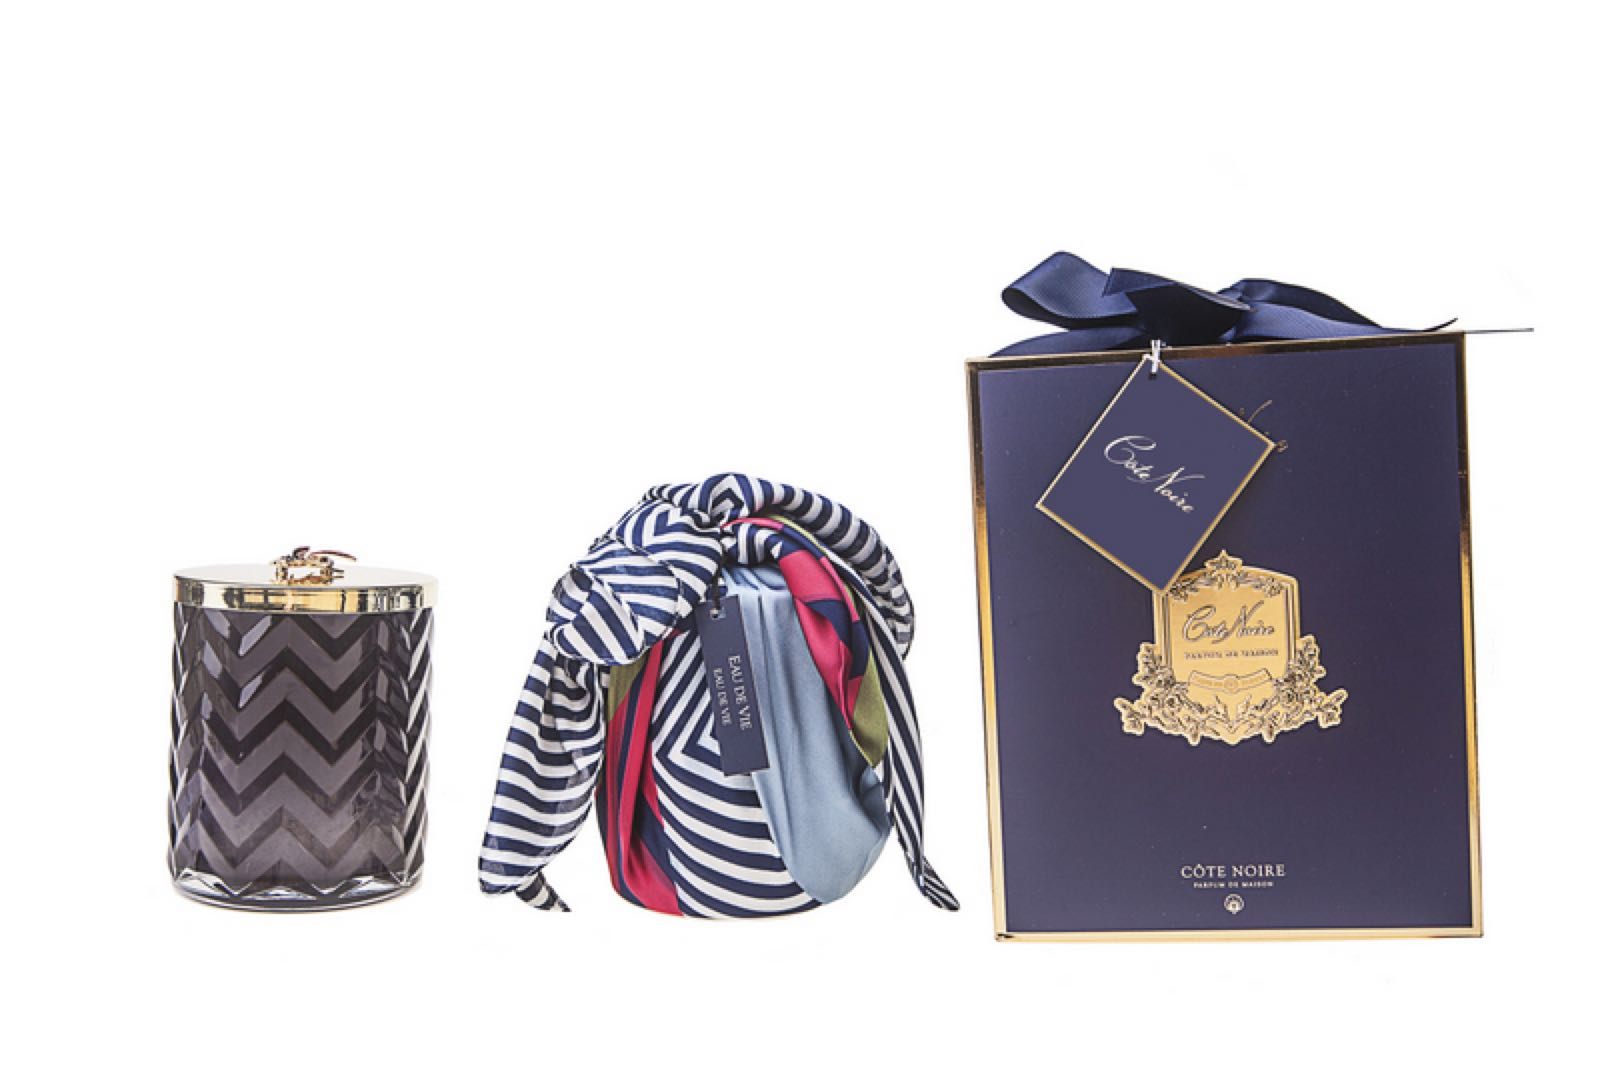 Cote Noire Black Herringbone Fragranced Candle with Red Bee detail on Lid Includes a Beautiful Scarf and Gift box